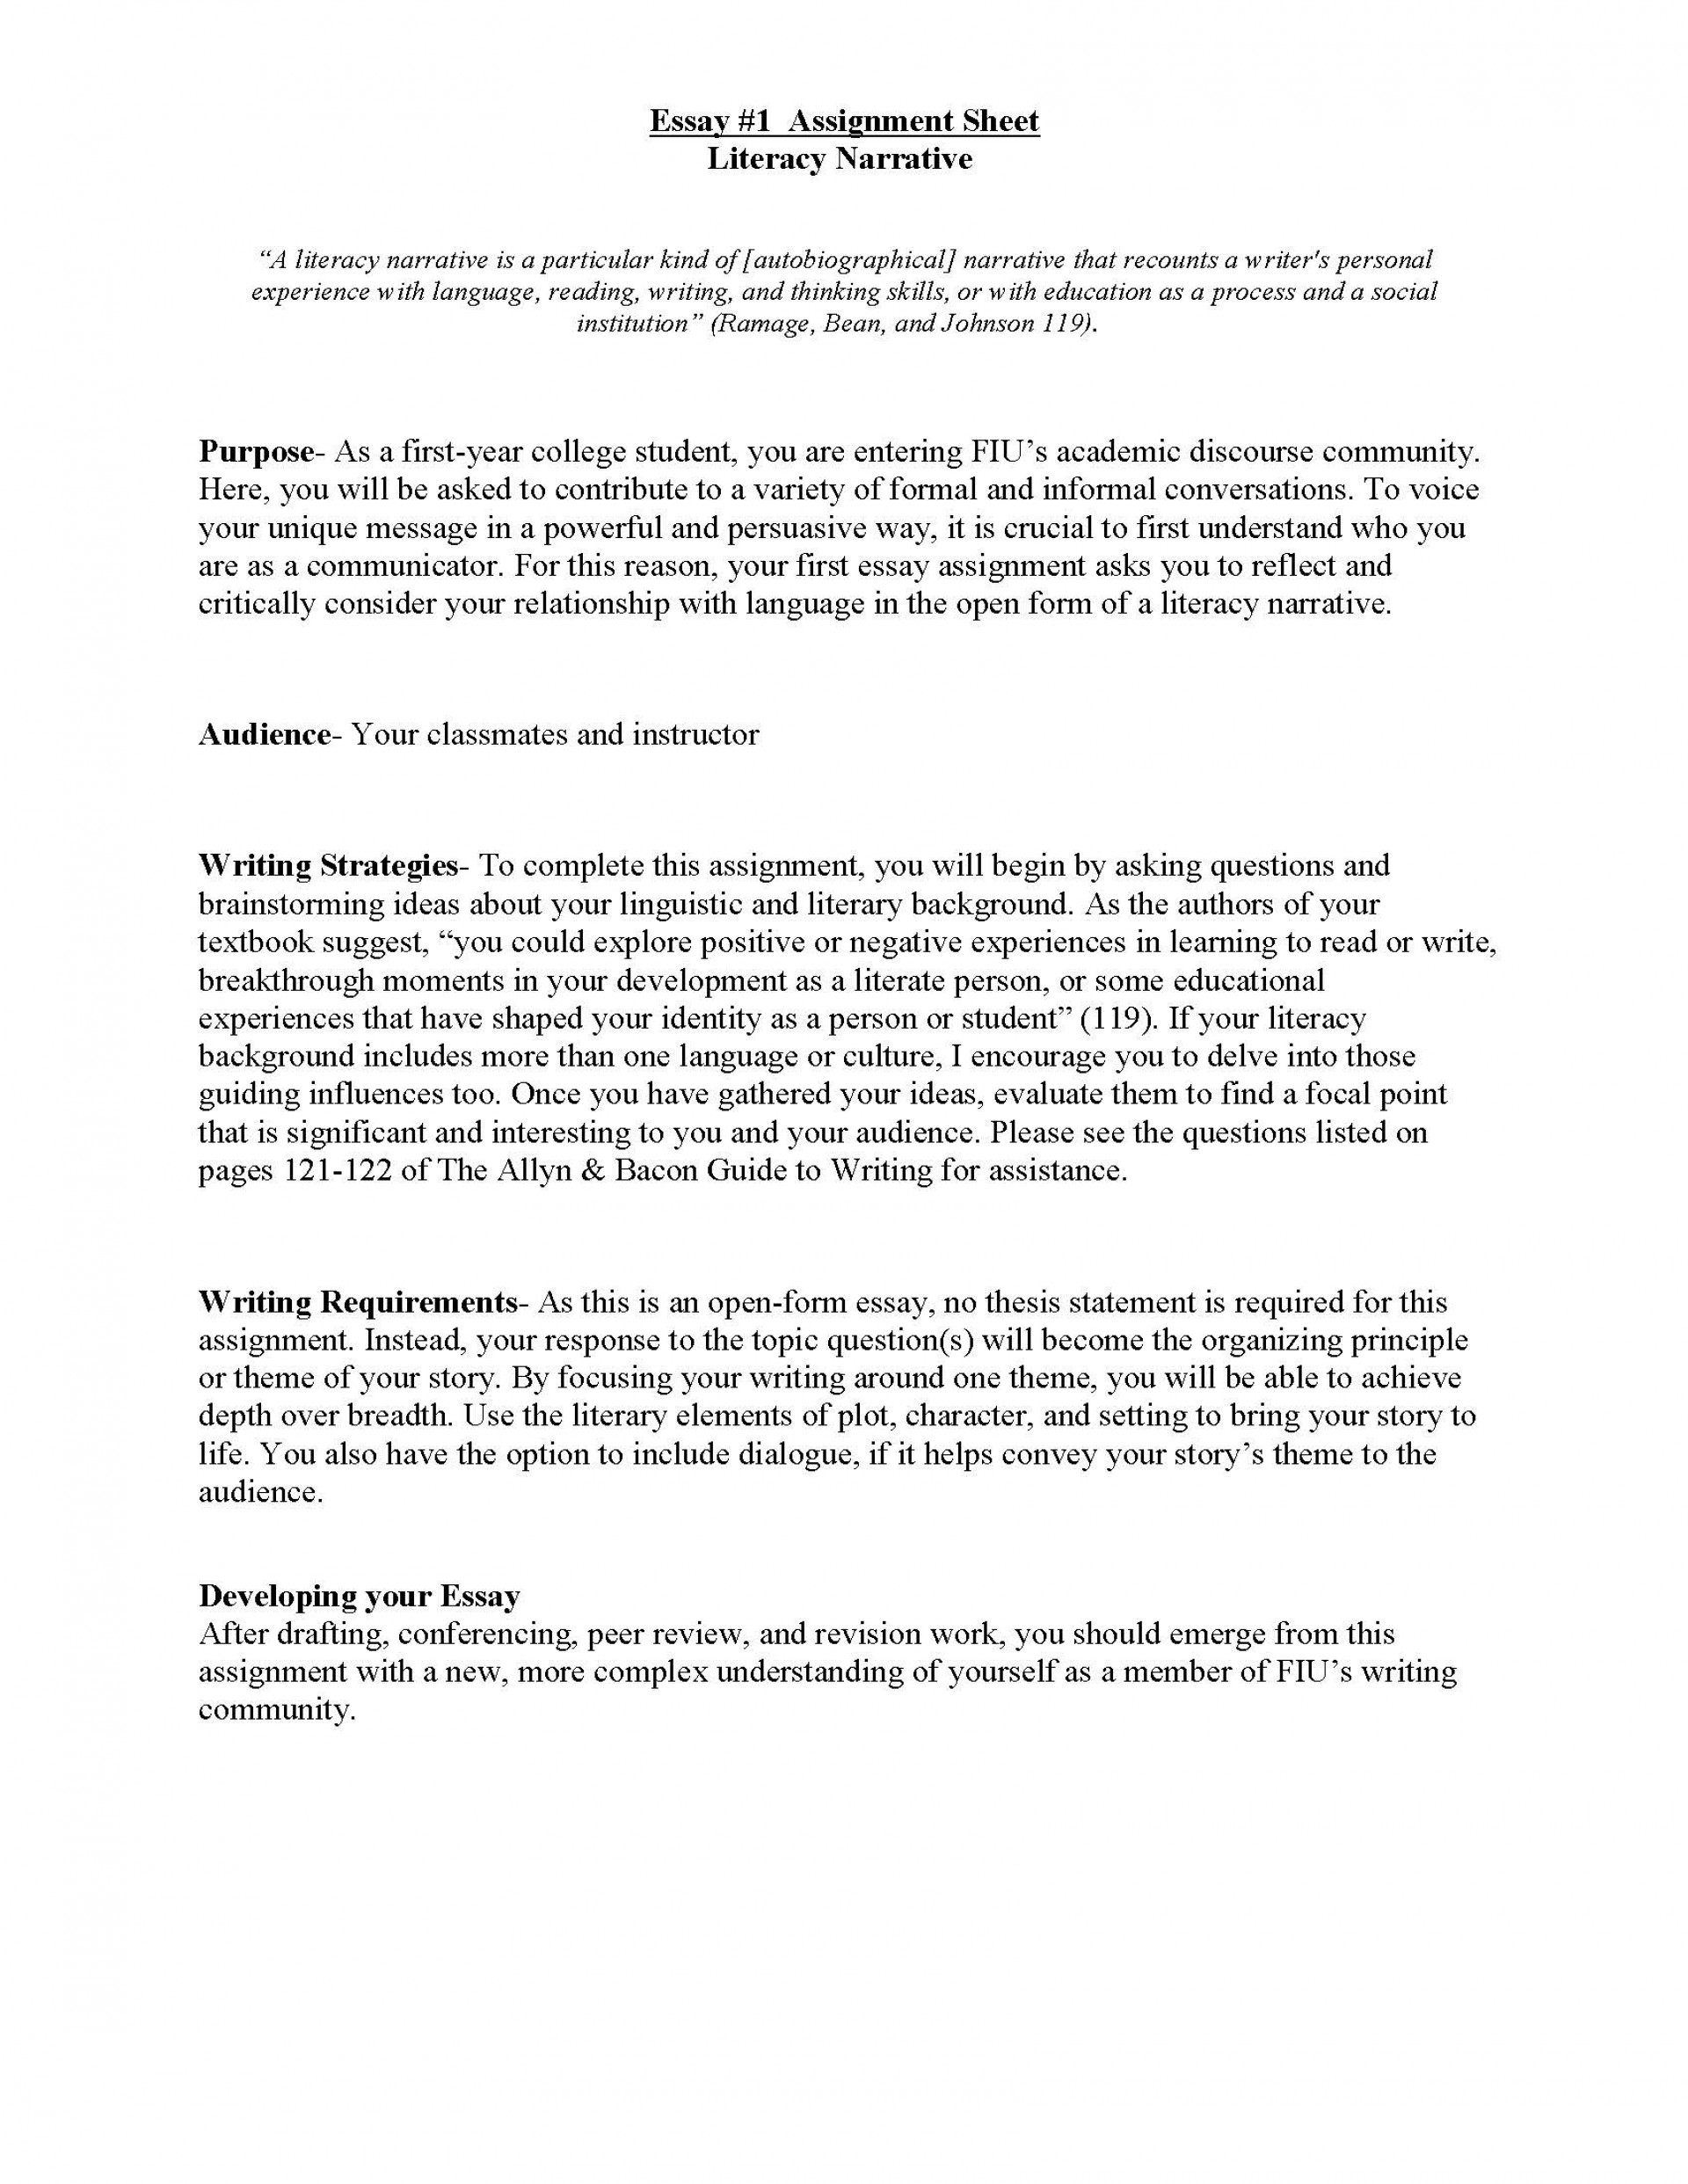 020 Essay Example Literacy Narrative Unit Assignment Spring 2012 Page 1 Fascinating Define Nonfiction 1920